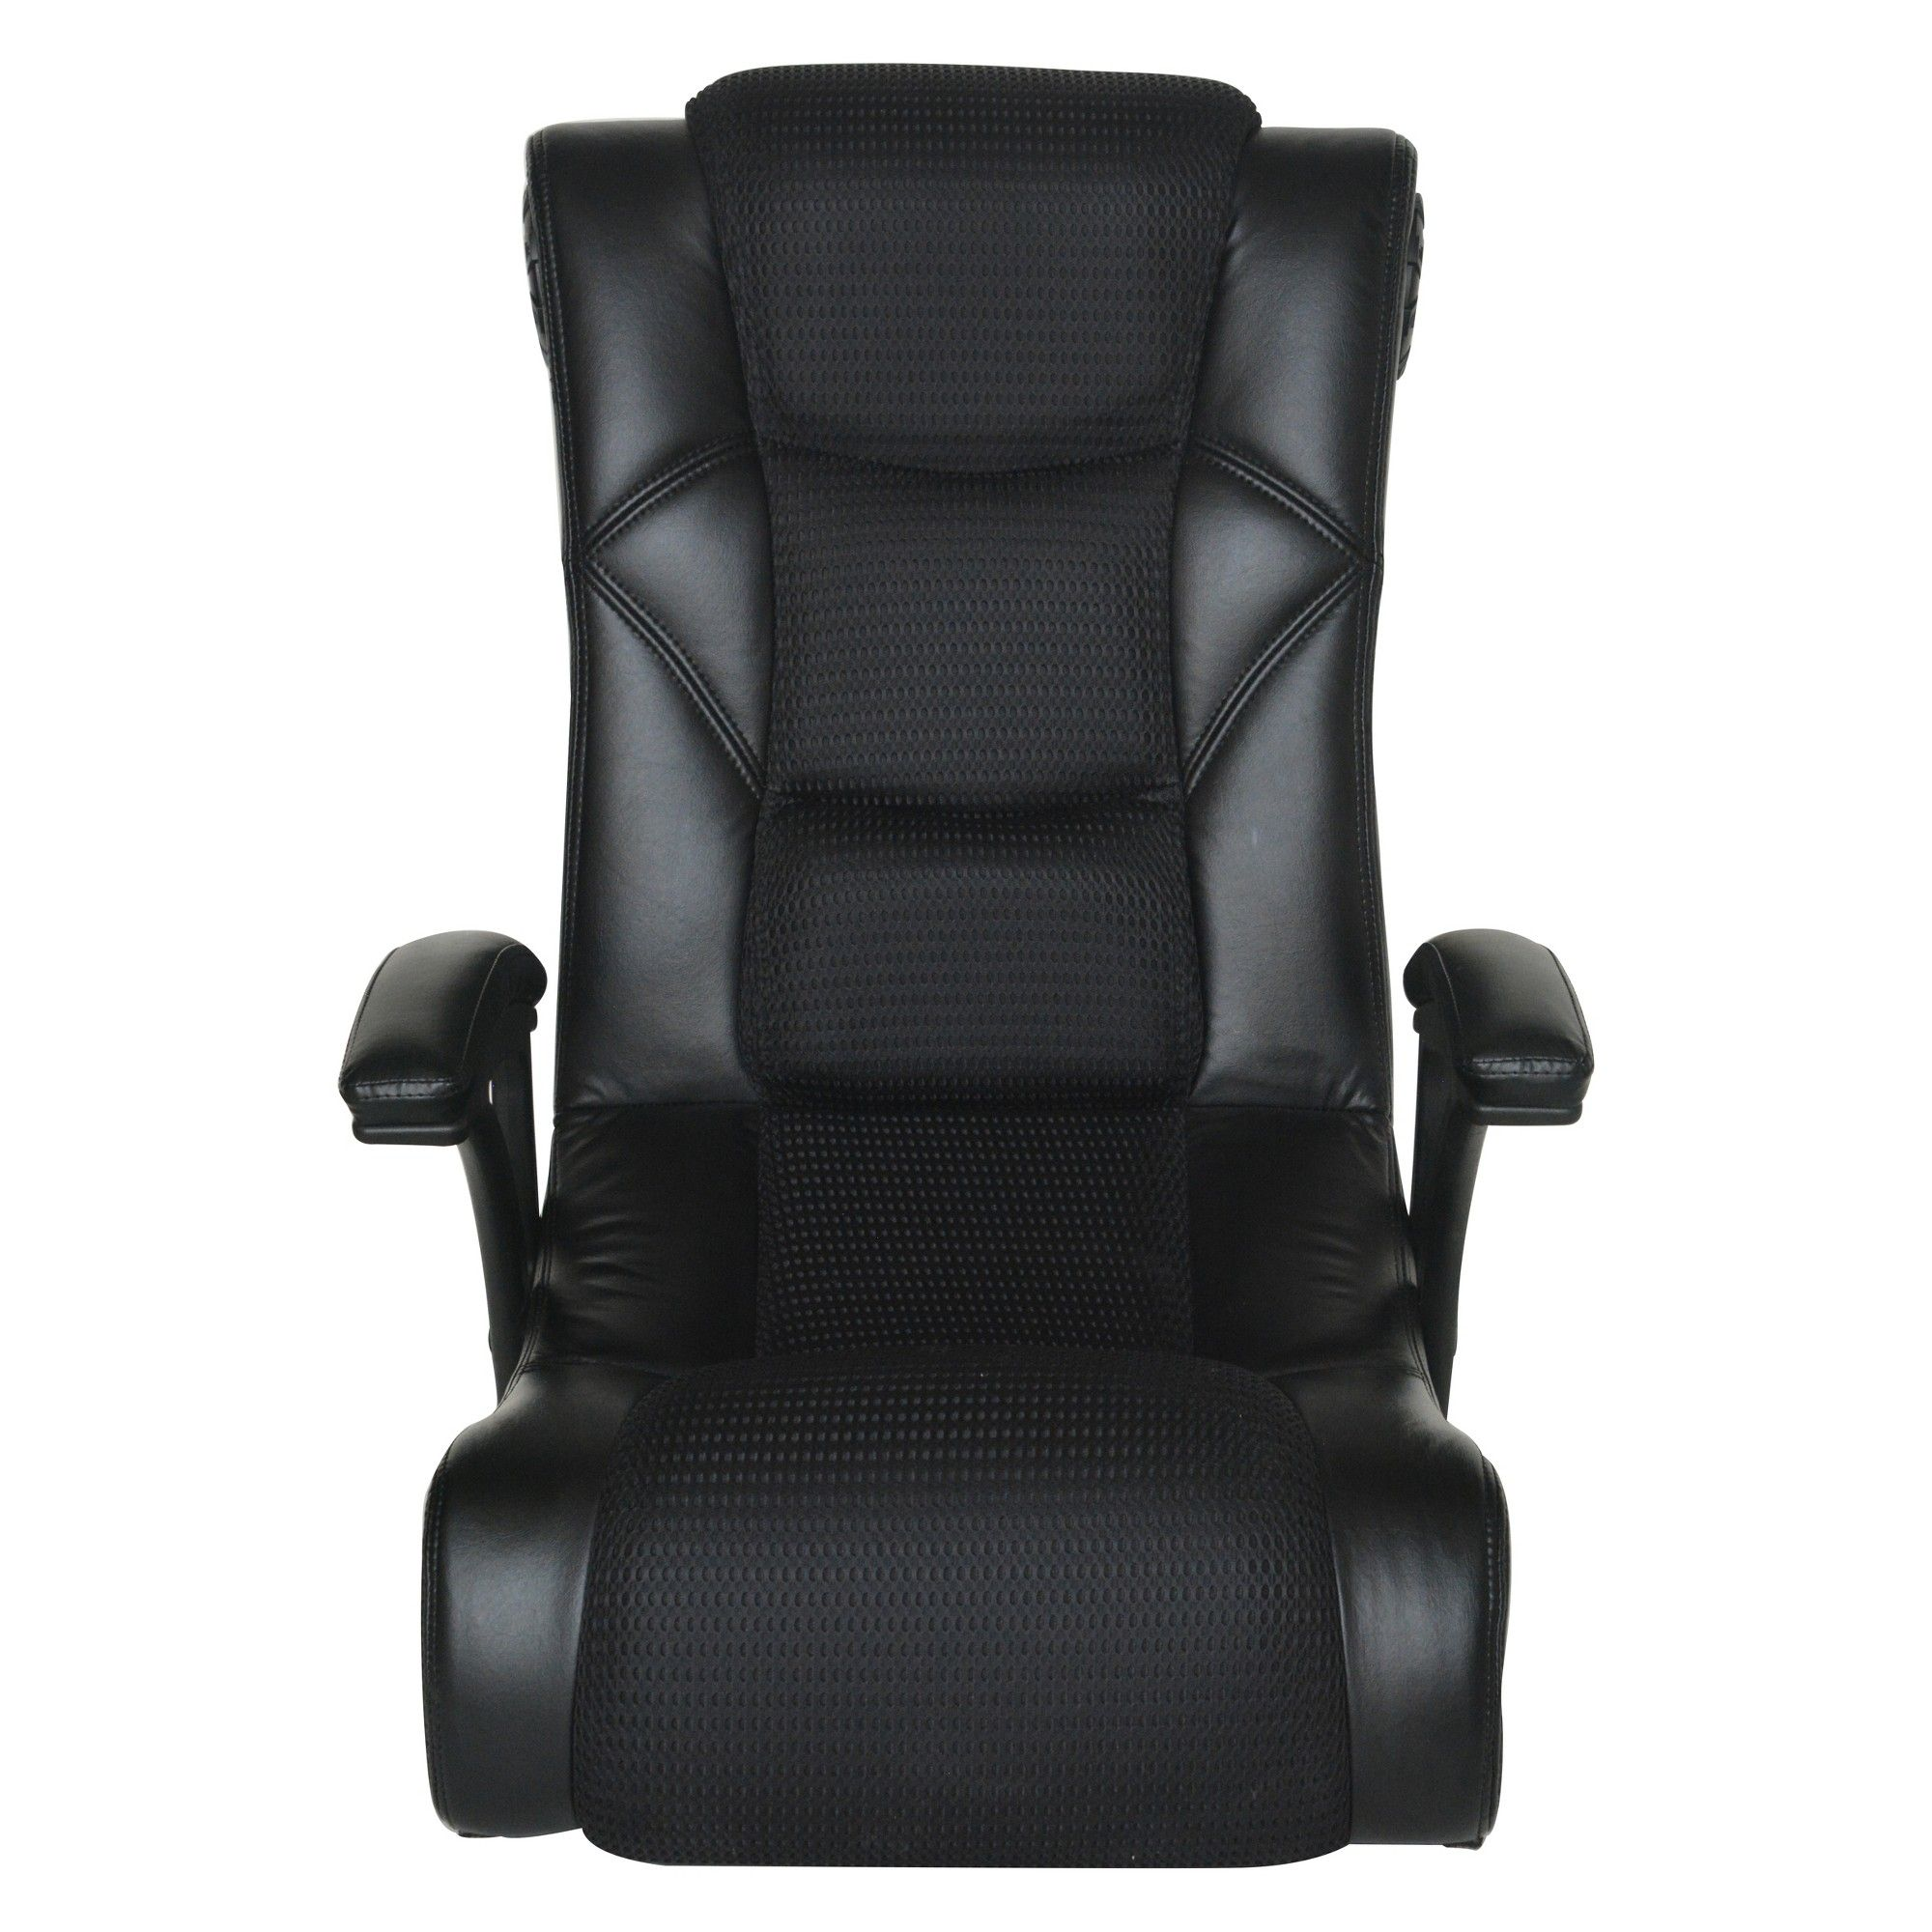 Outstanding 2 0 Bt With Usb Floor Rocker Gaming Chair Black X Rocker Machost Co Dining Chair Design Ideas Machostcouk